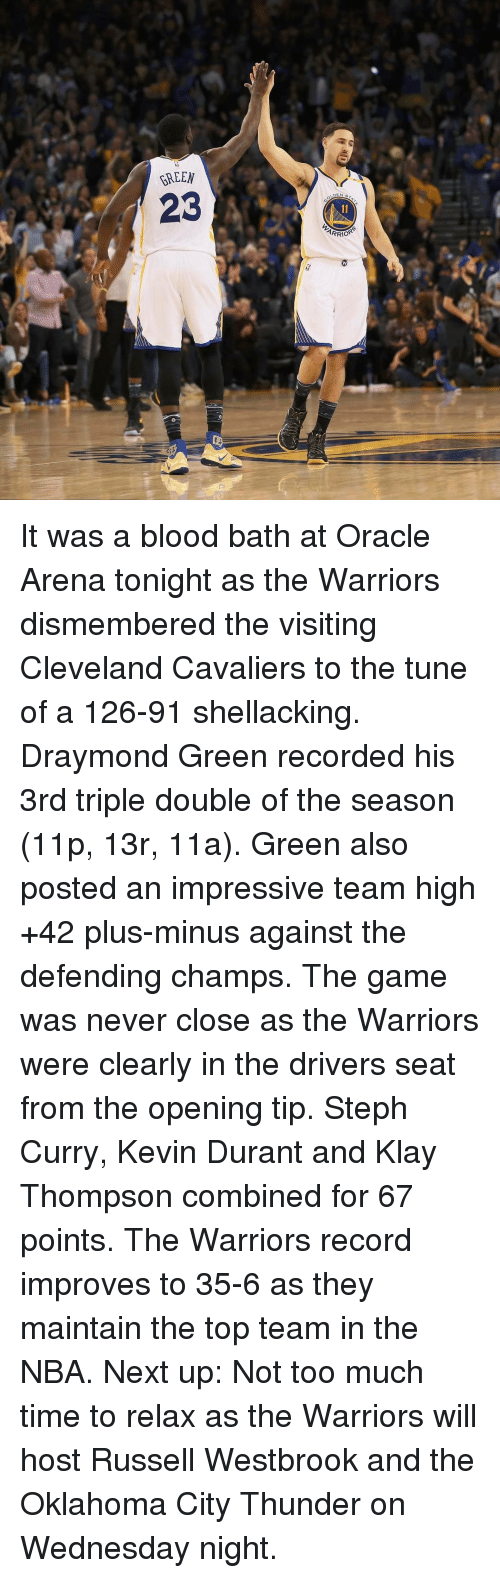 Wednesday Night: BREEN  23  ARRIO It was a blood bath at Oracle Arena tonight as the Warriors dismembered the visiting Cleveland Cavaliers to the tune of a 126-91 shellacking. Draymond Green recorded his 3rd triple double of the season (11p, 13r, 11a). Green also posted an impressive team high +42 plus-minus against the defending champs. The game was never close as the Warriors were clearly in the drivers seat from the opening tip. Steph Curry, Kevin Durant and Klay Thompson combined for 67 points. The Warriors record improves to 35-6 as they maintain the top team in the NBA. Next up: Not too much time to relax as the Warriors will host Russell Westbrook and the Oklahoma City Thunder on Wednesday night.